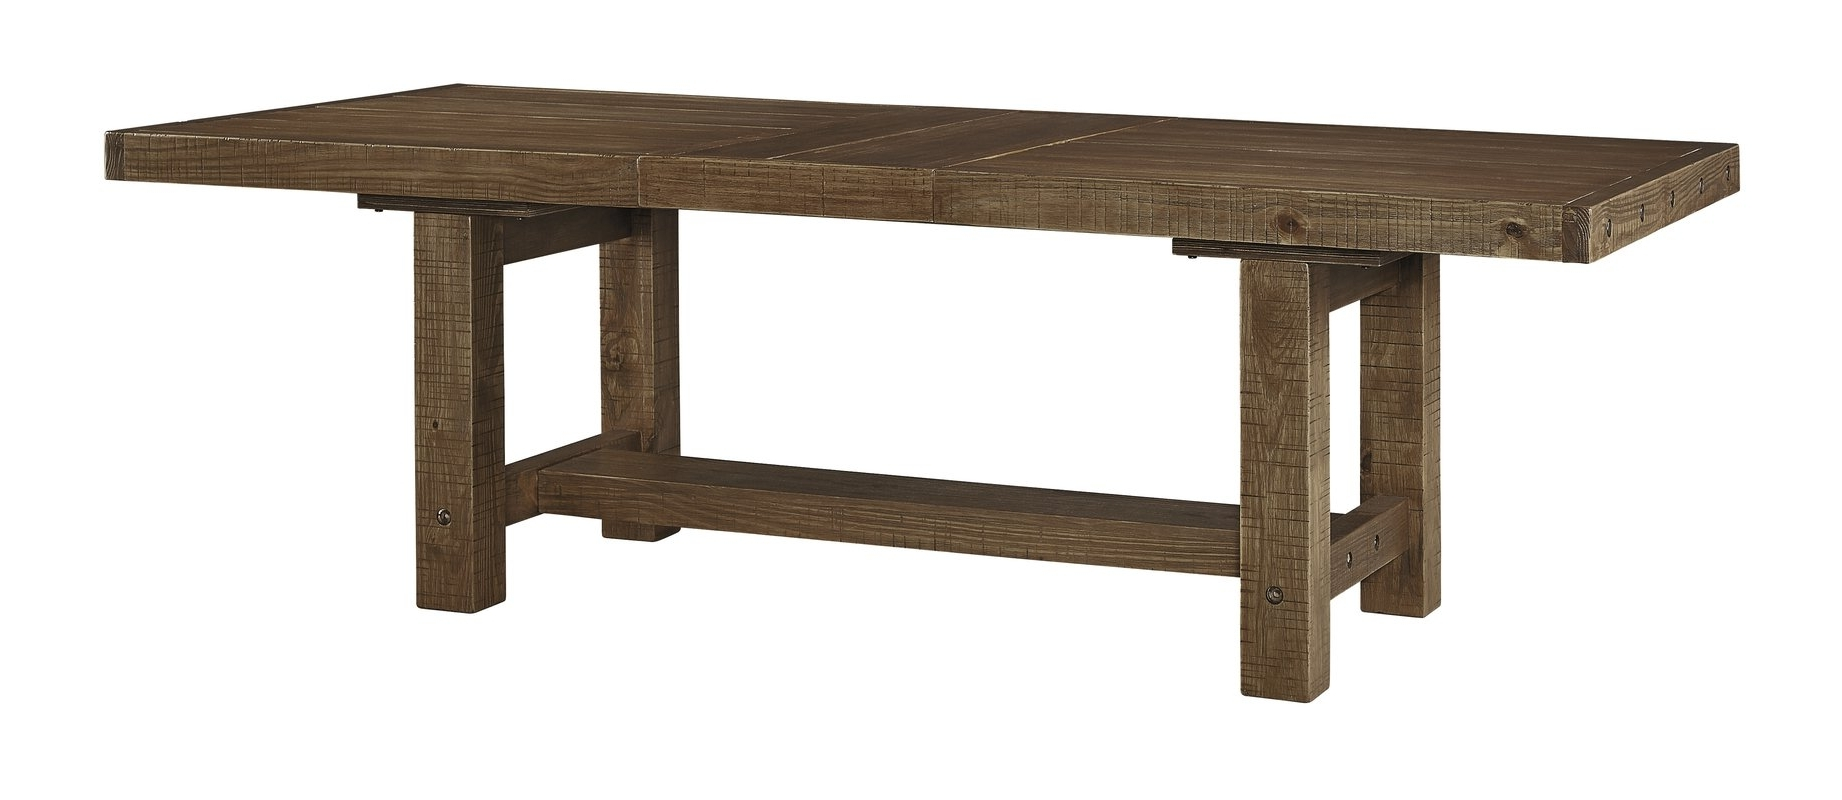 Wayfair With Regard To Non Wood Dining Tables (View 16 of 25)